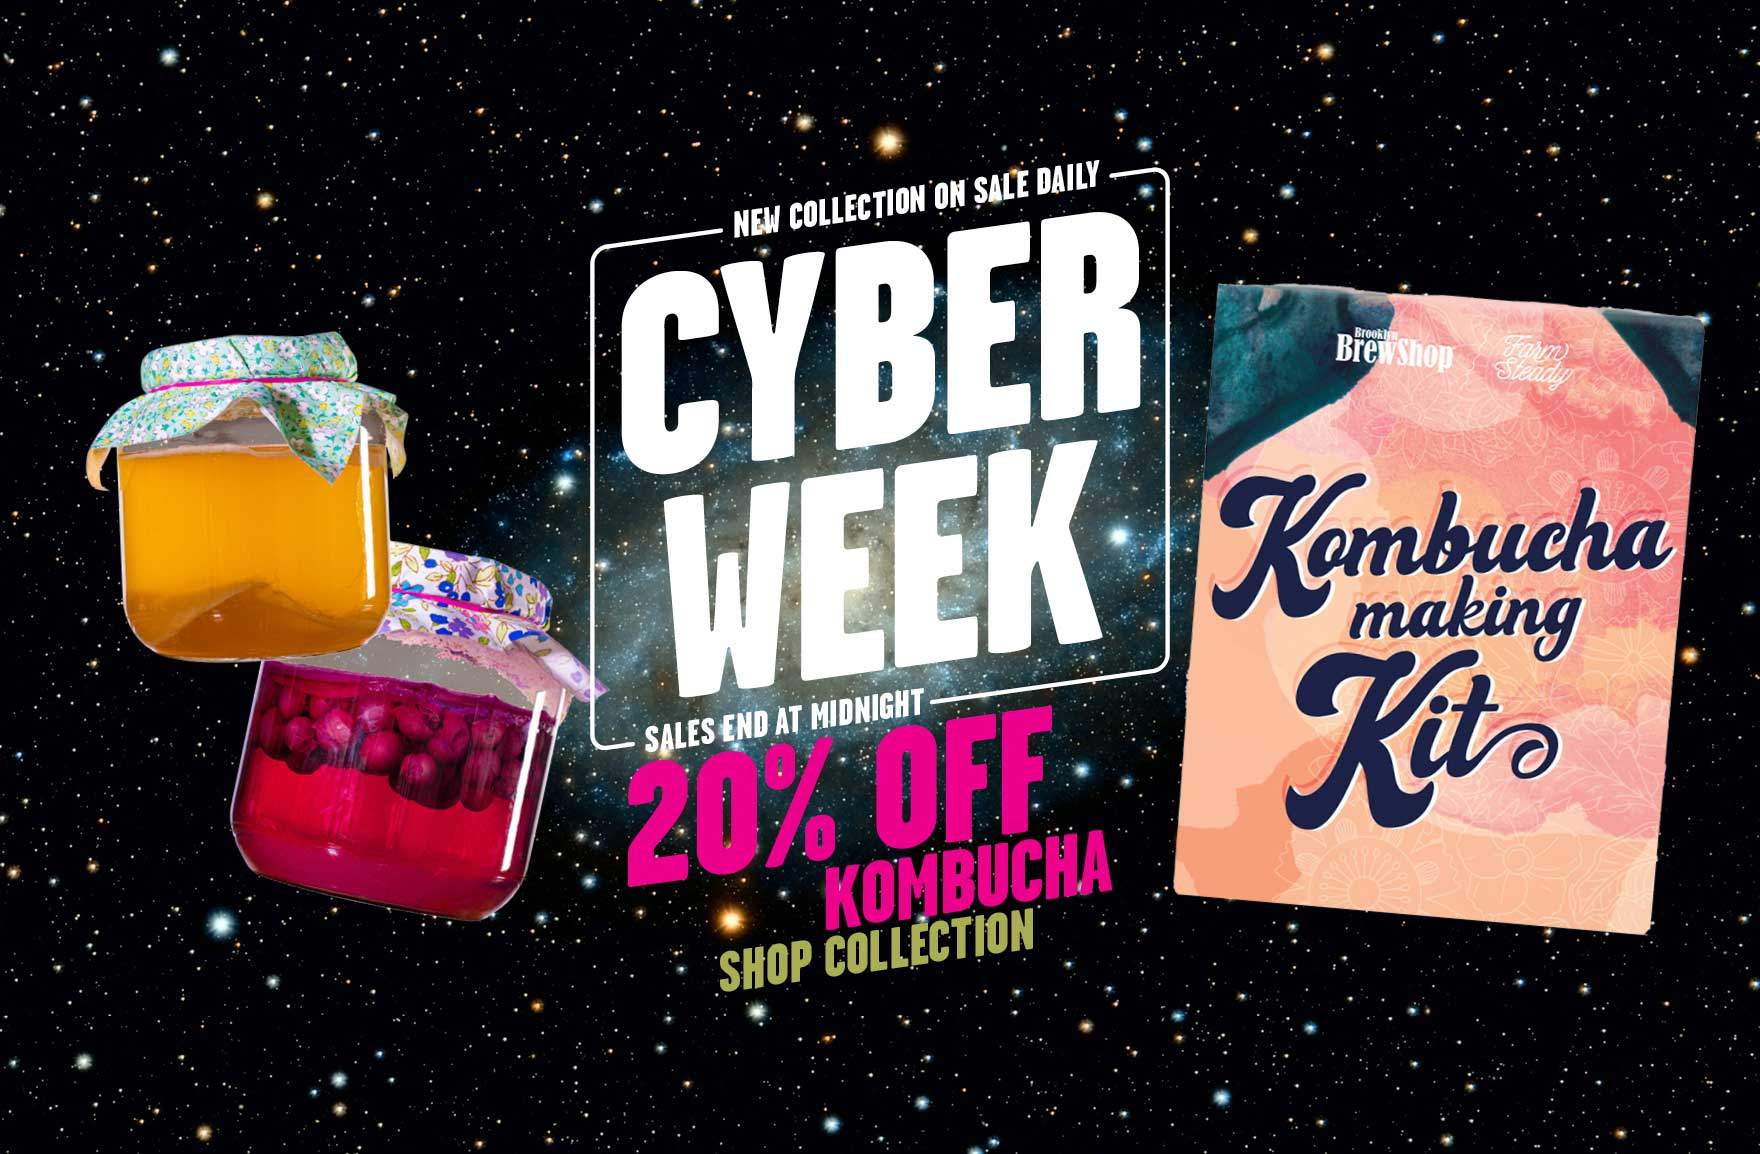 Cyber Week Sale 2019: 20% Off All Kombucha Kits & Accessories